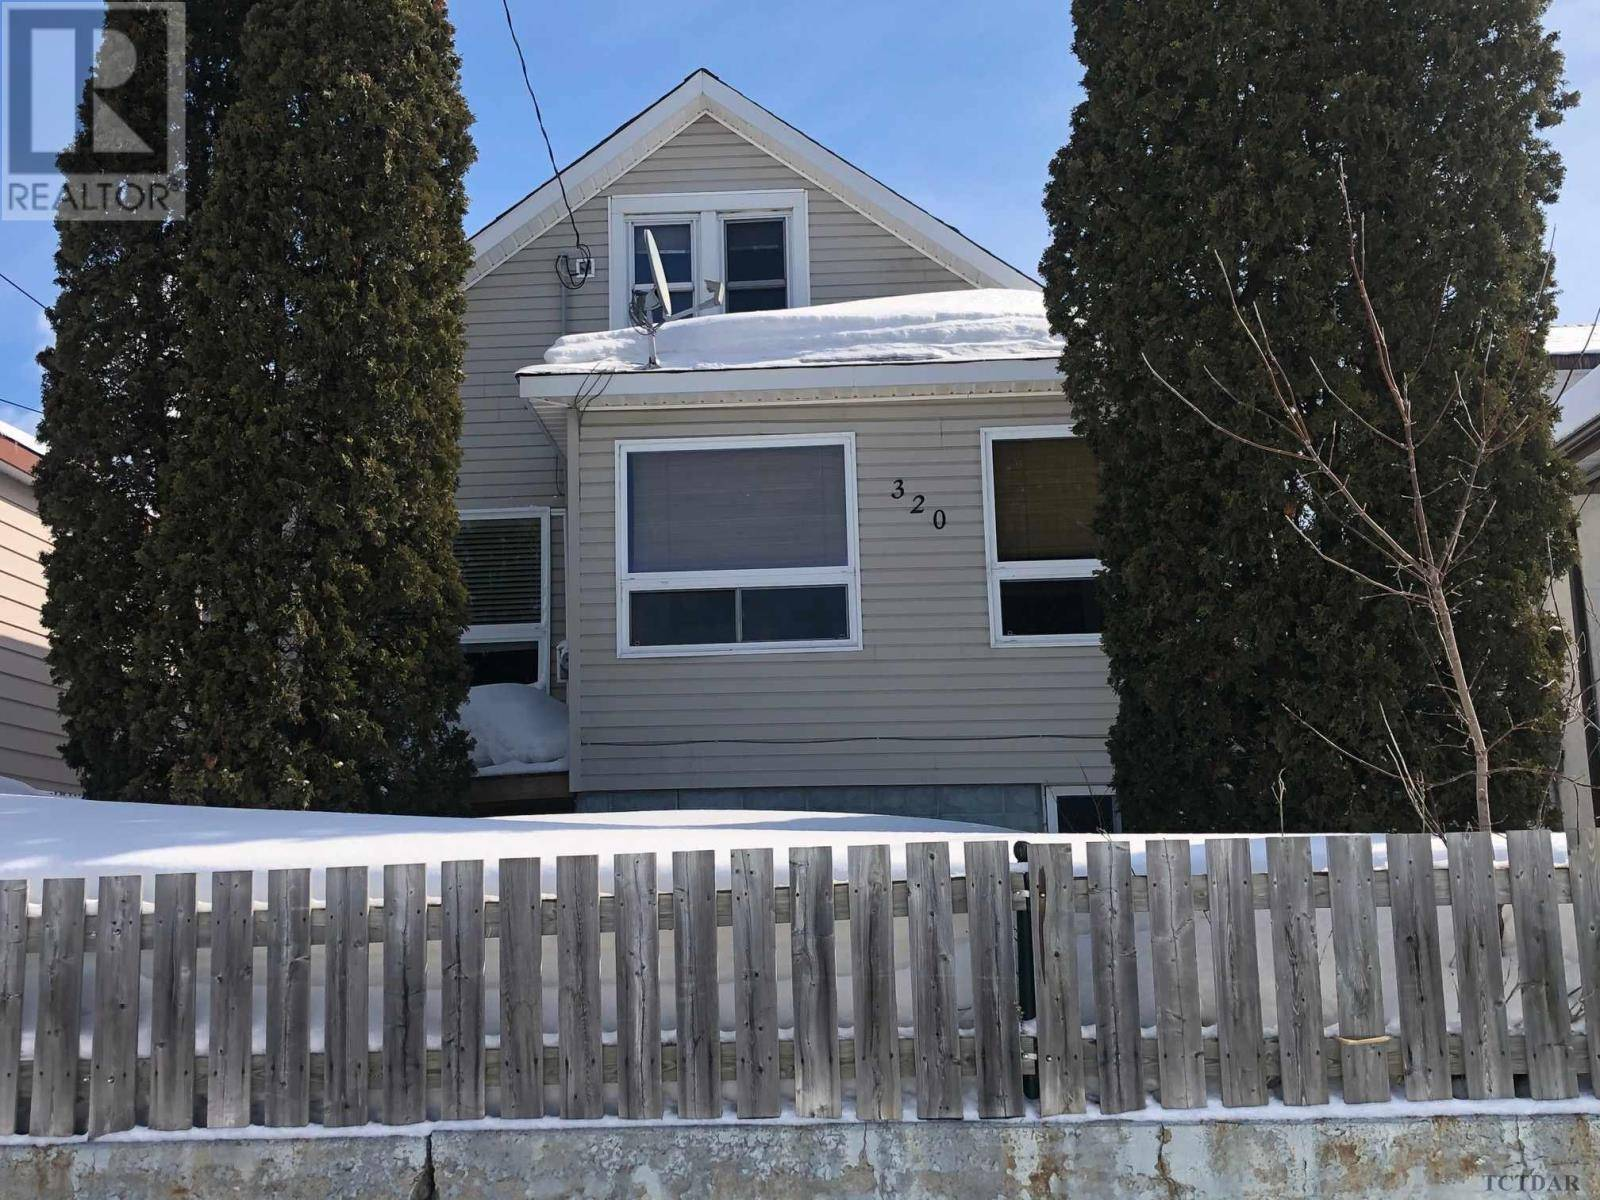 House for sale at 320 Balsam St S Timmins Ontario - MLS: TM200521